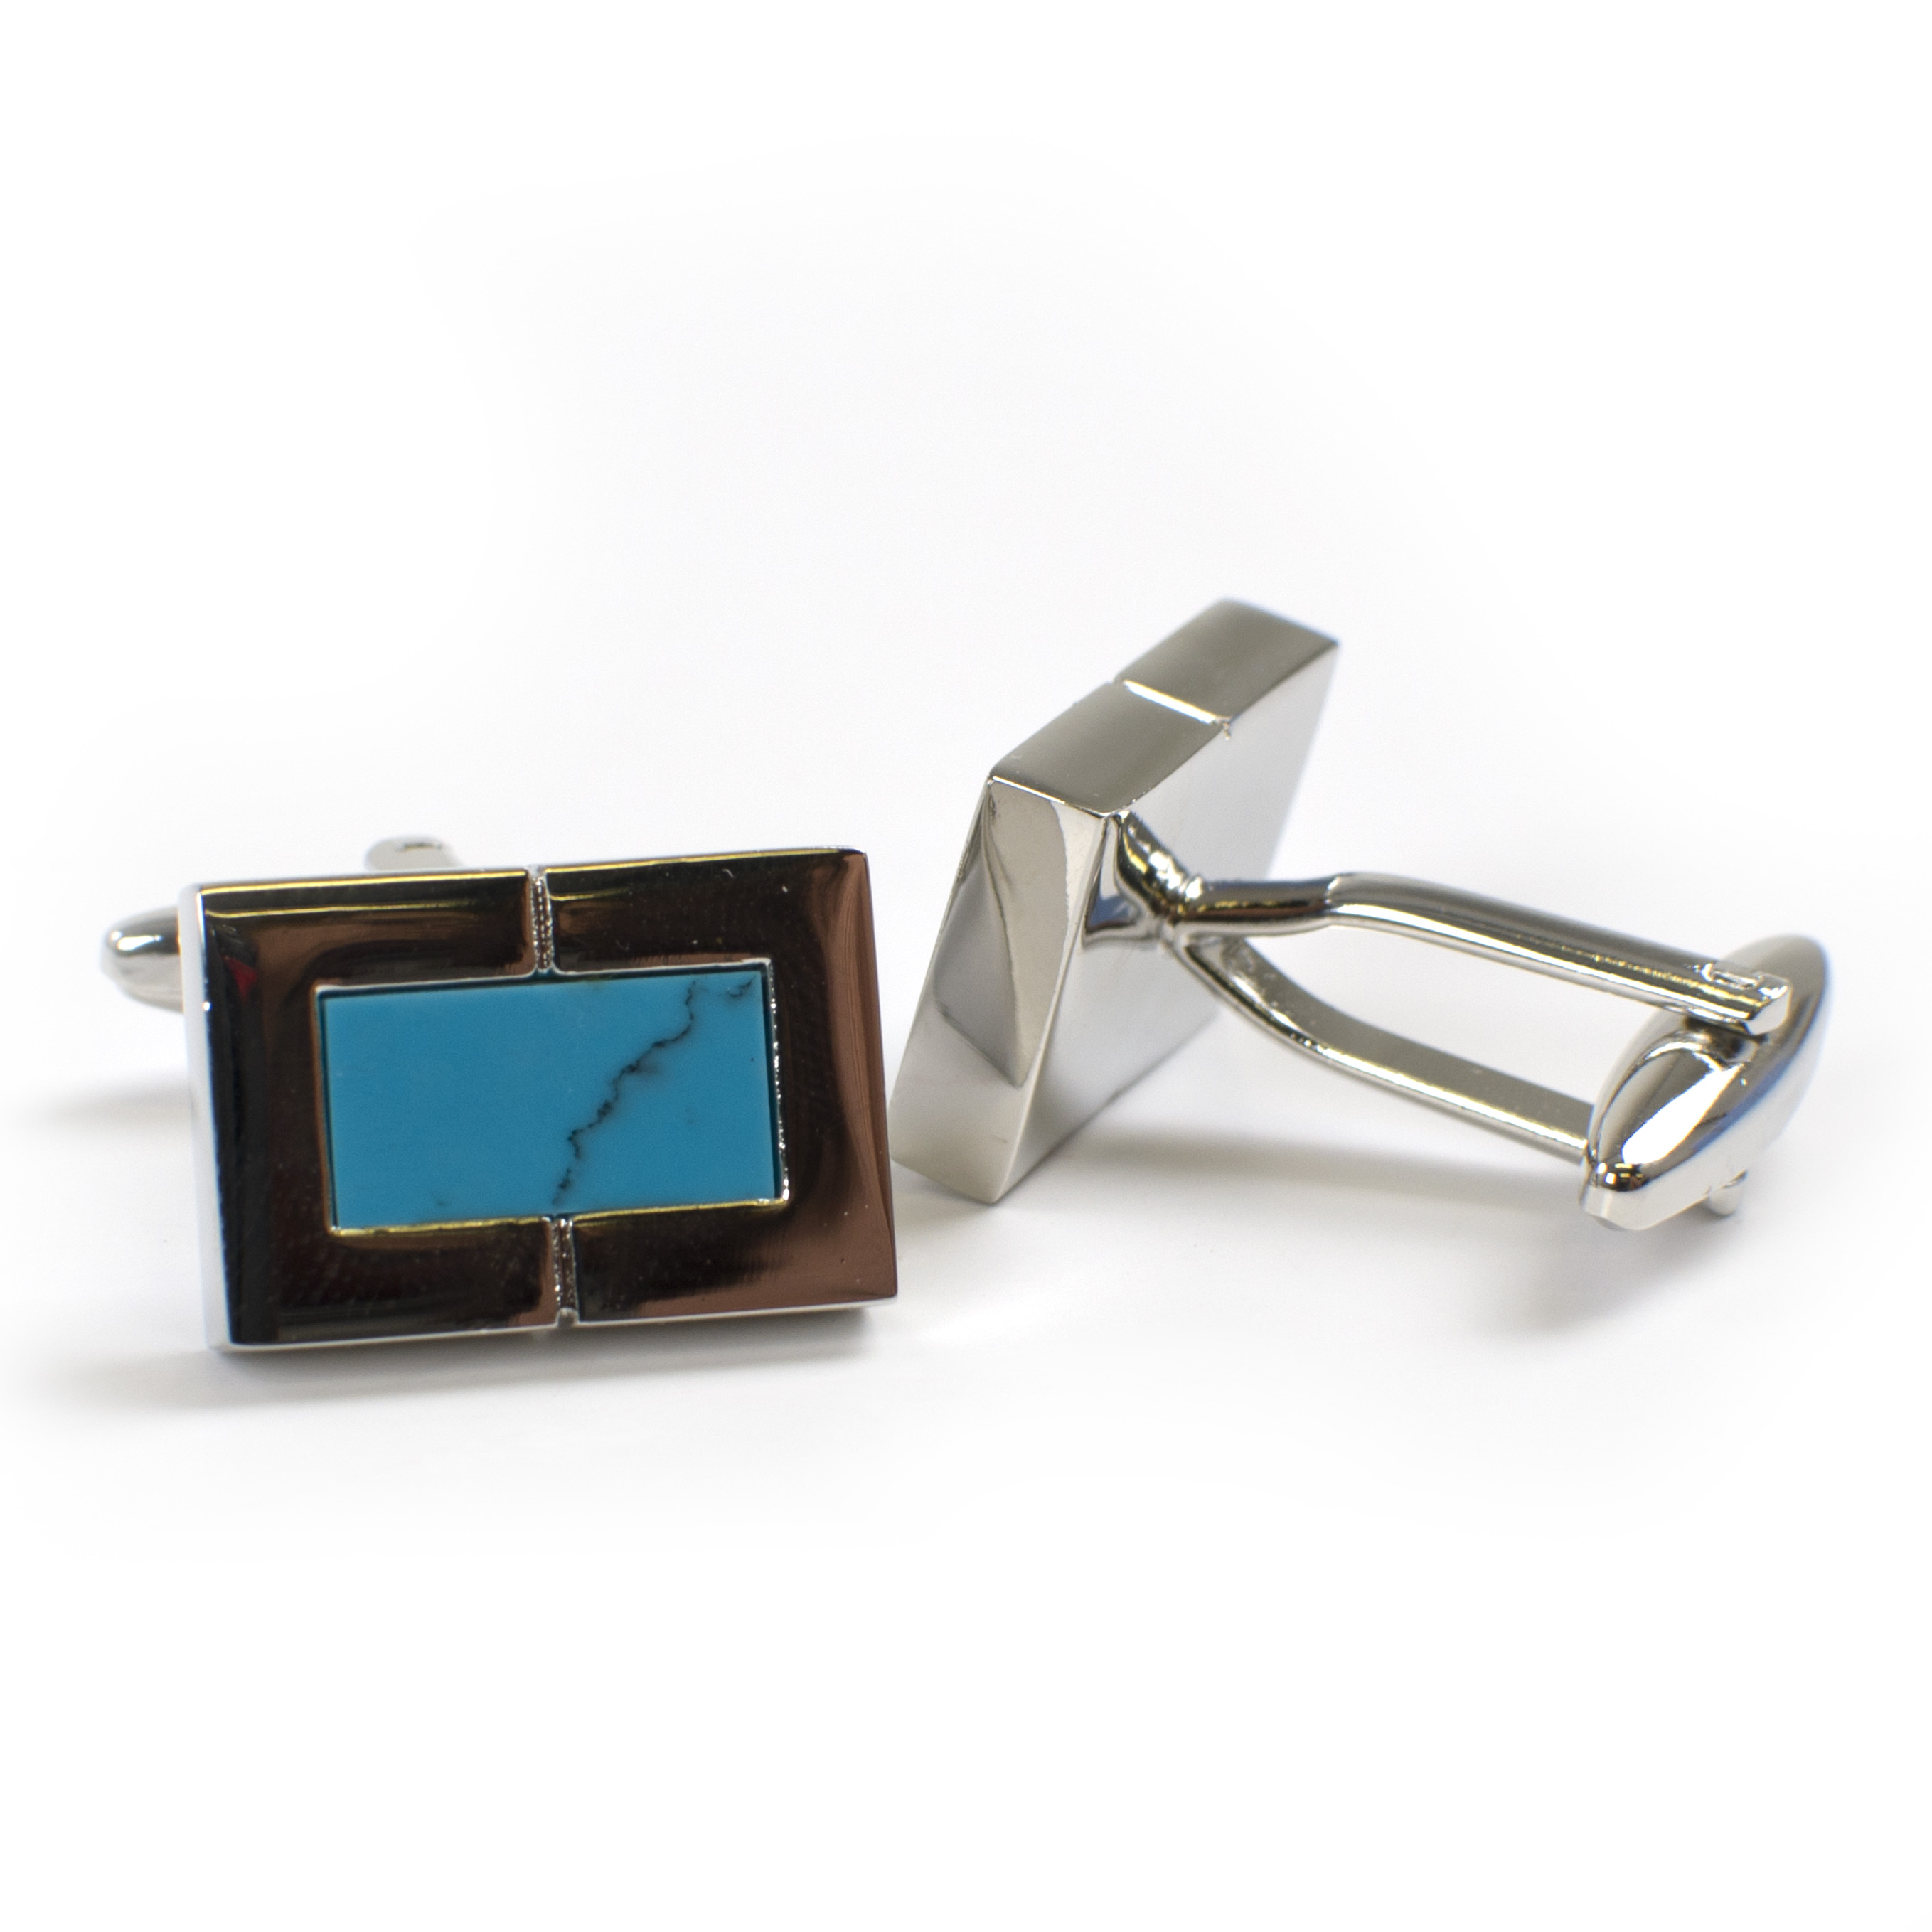 Cufflinks with turquoise inlay